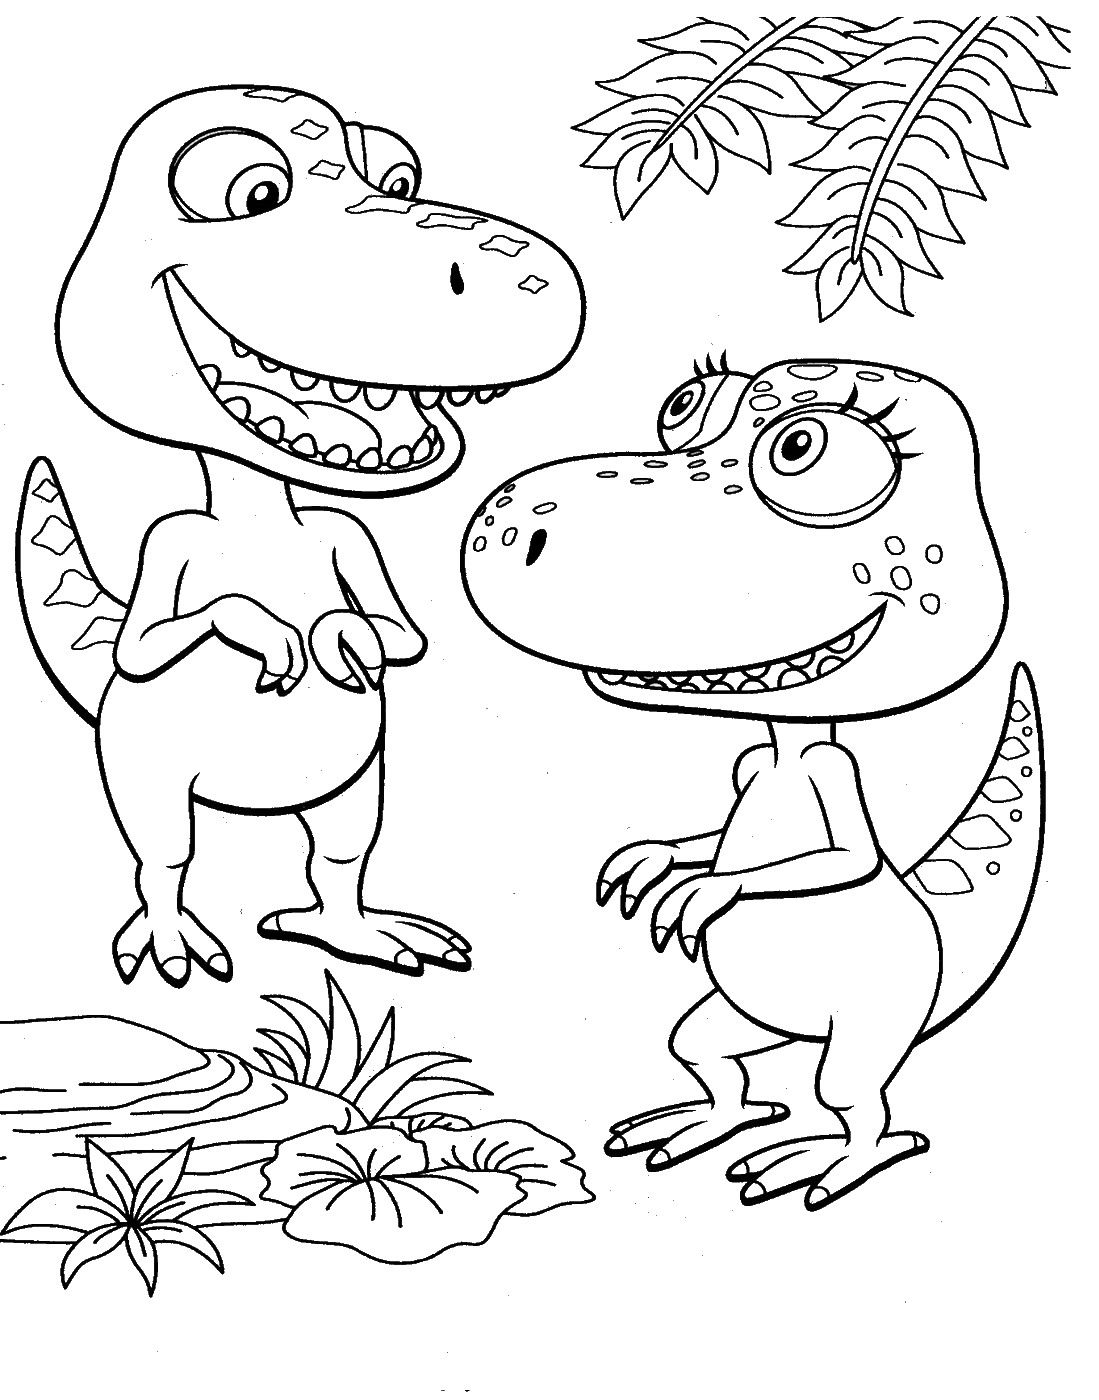 Dinosaur Train Colouring Pages Dinosaur Coloring Pages Dinosaur Coloring Train Coloring Pages